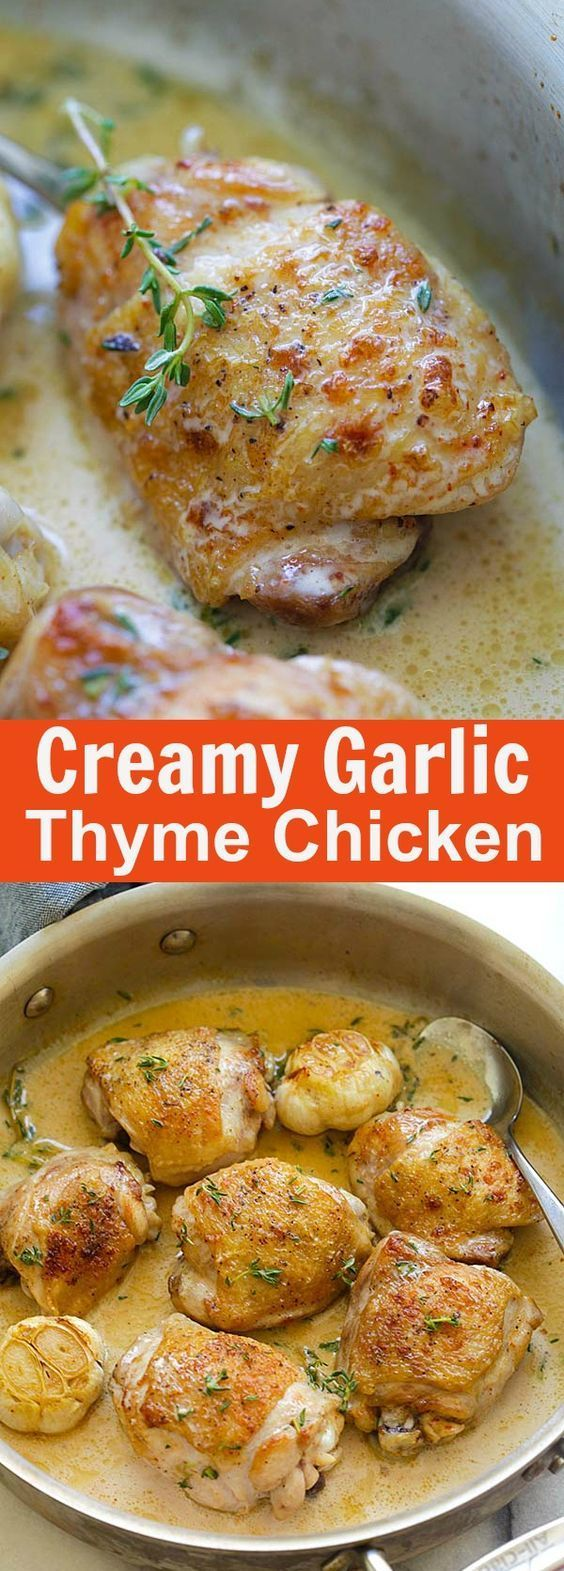 Creamy Garlic Thyme Chicken – delicious pan-fried chicken in a creamy garlic thyme sauce. Easy one-skillet chicken dinner is ready in 20 mins | http://rasamalaysia.com